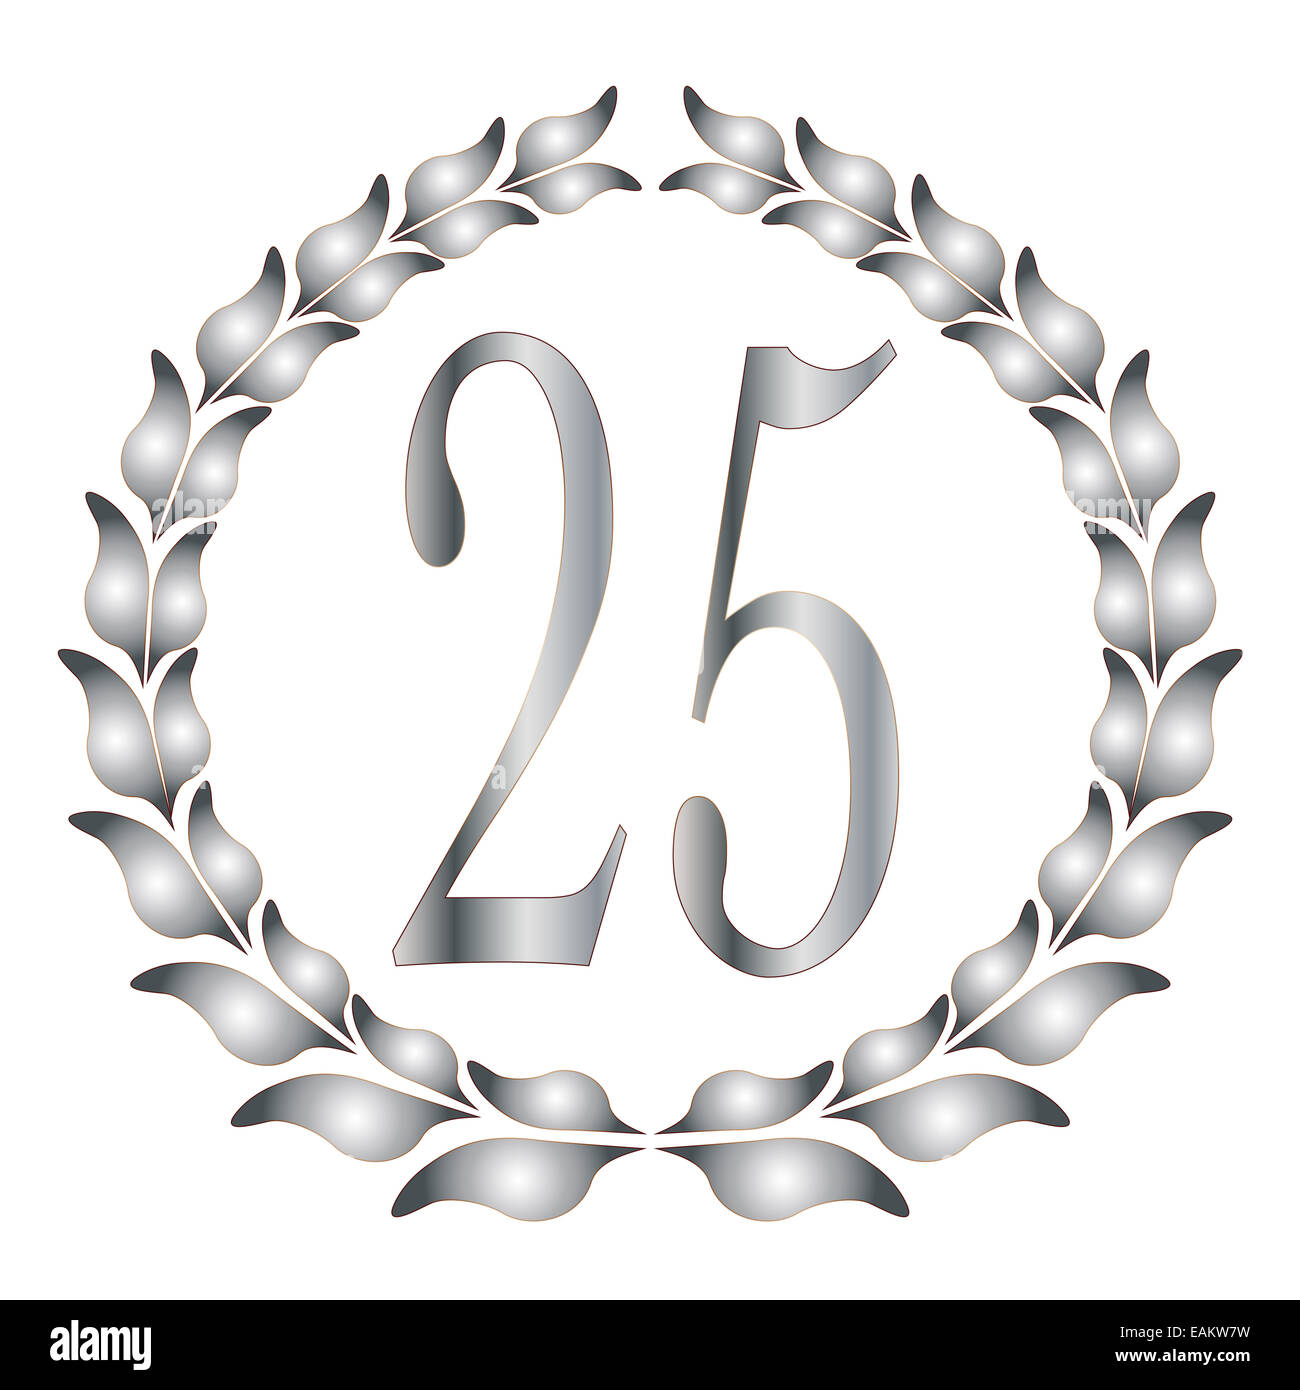 A 25th anniversary laurel over a white background - Stock Image